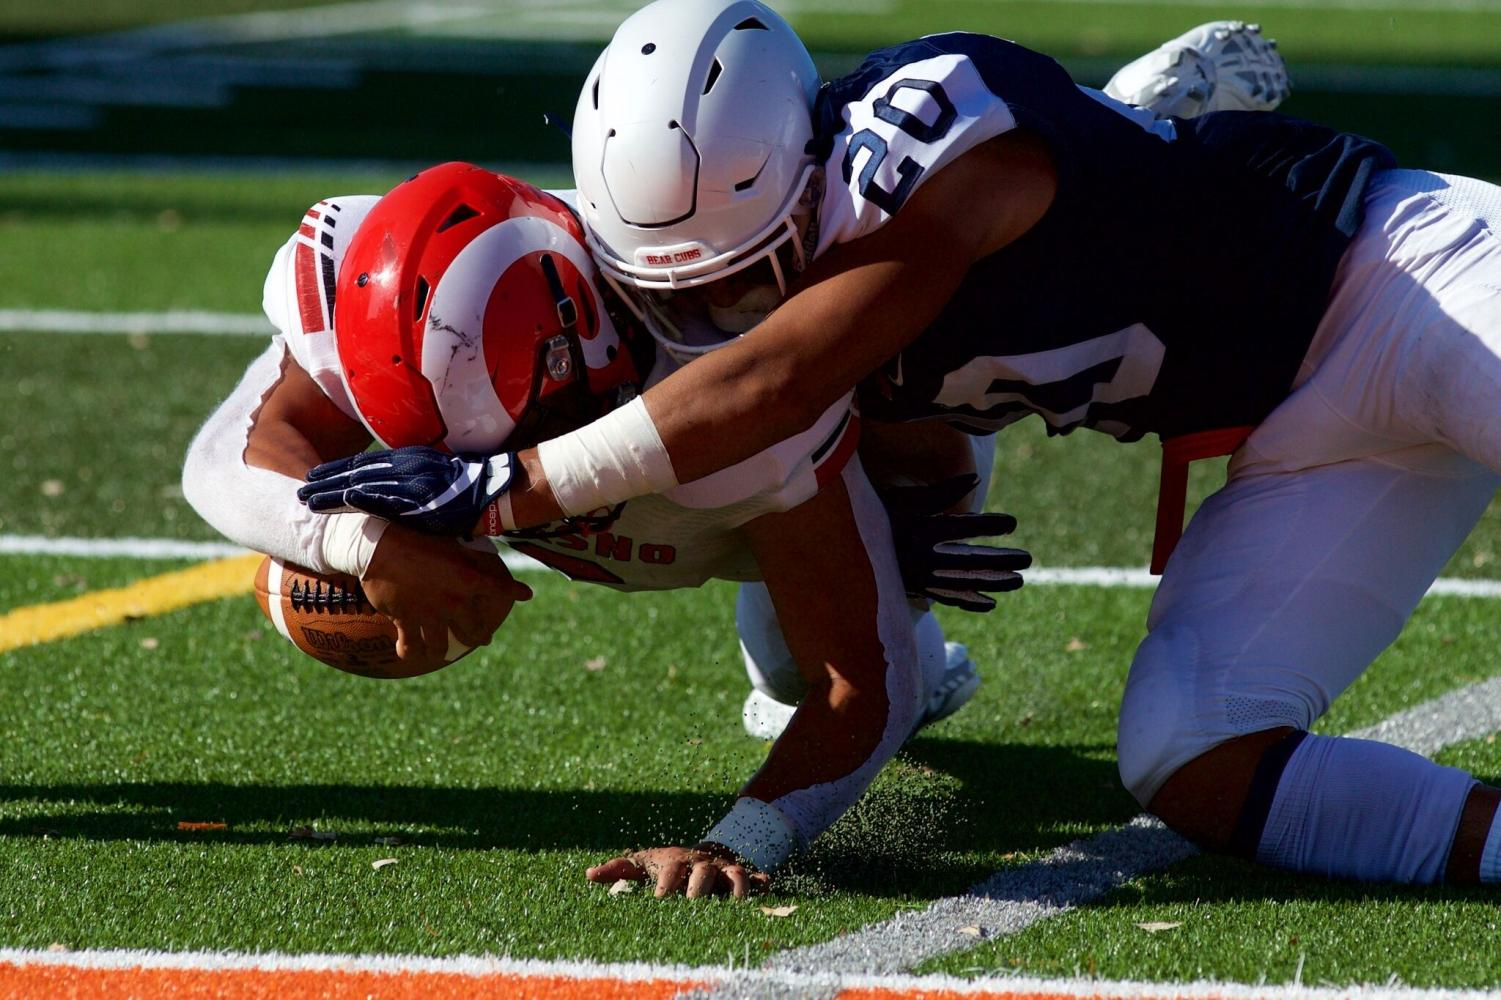 SRJC safety Kasey Kikuyama demonstrates a perfect form tackle against Fresno College Sept. 7. Though there is slight helmet to helmet contact, Kikuyama leads with his shoulder and wraps up nicely.